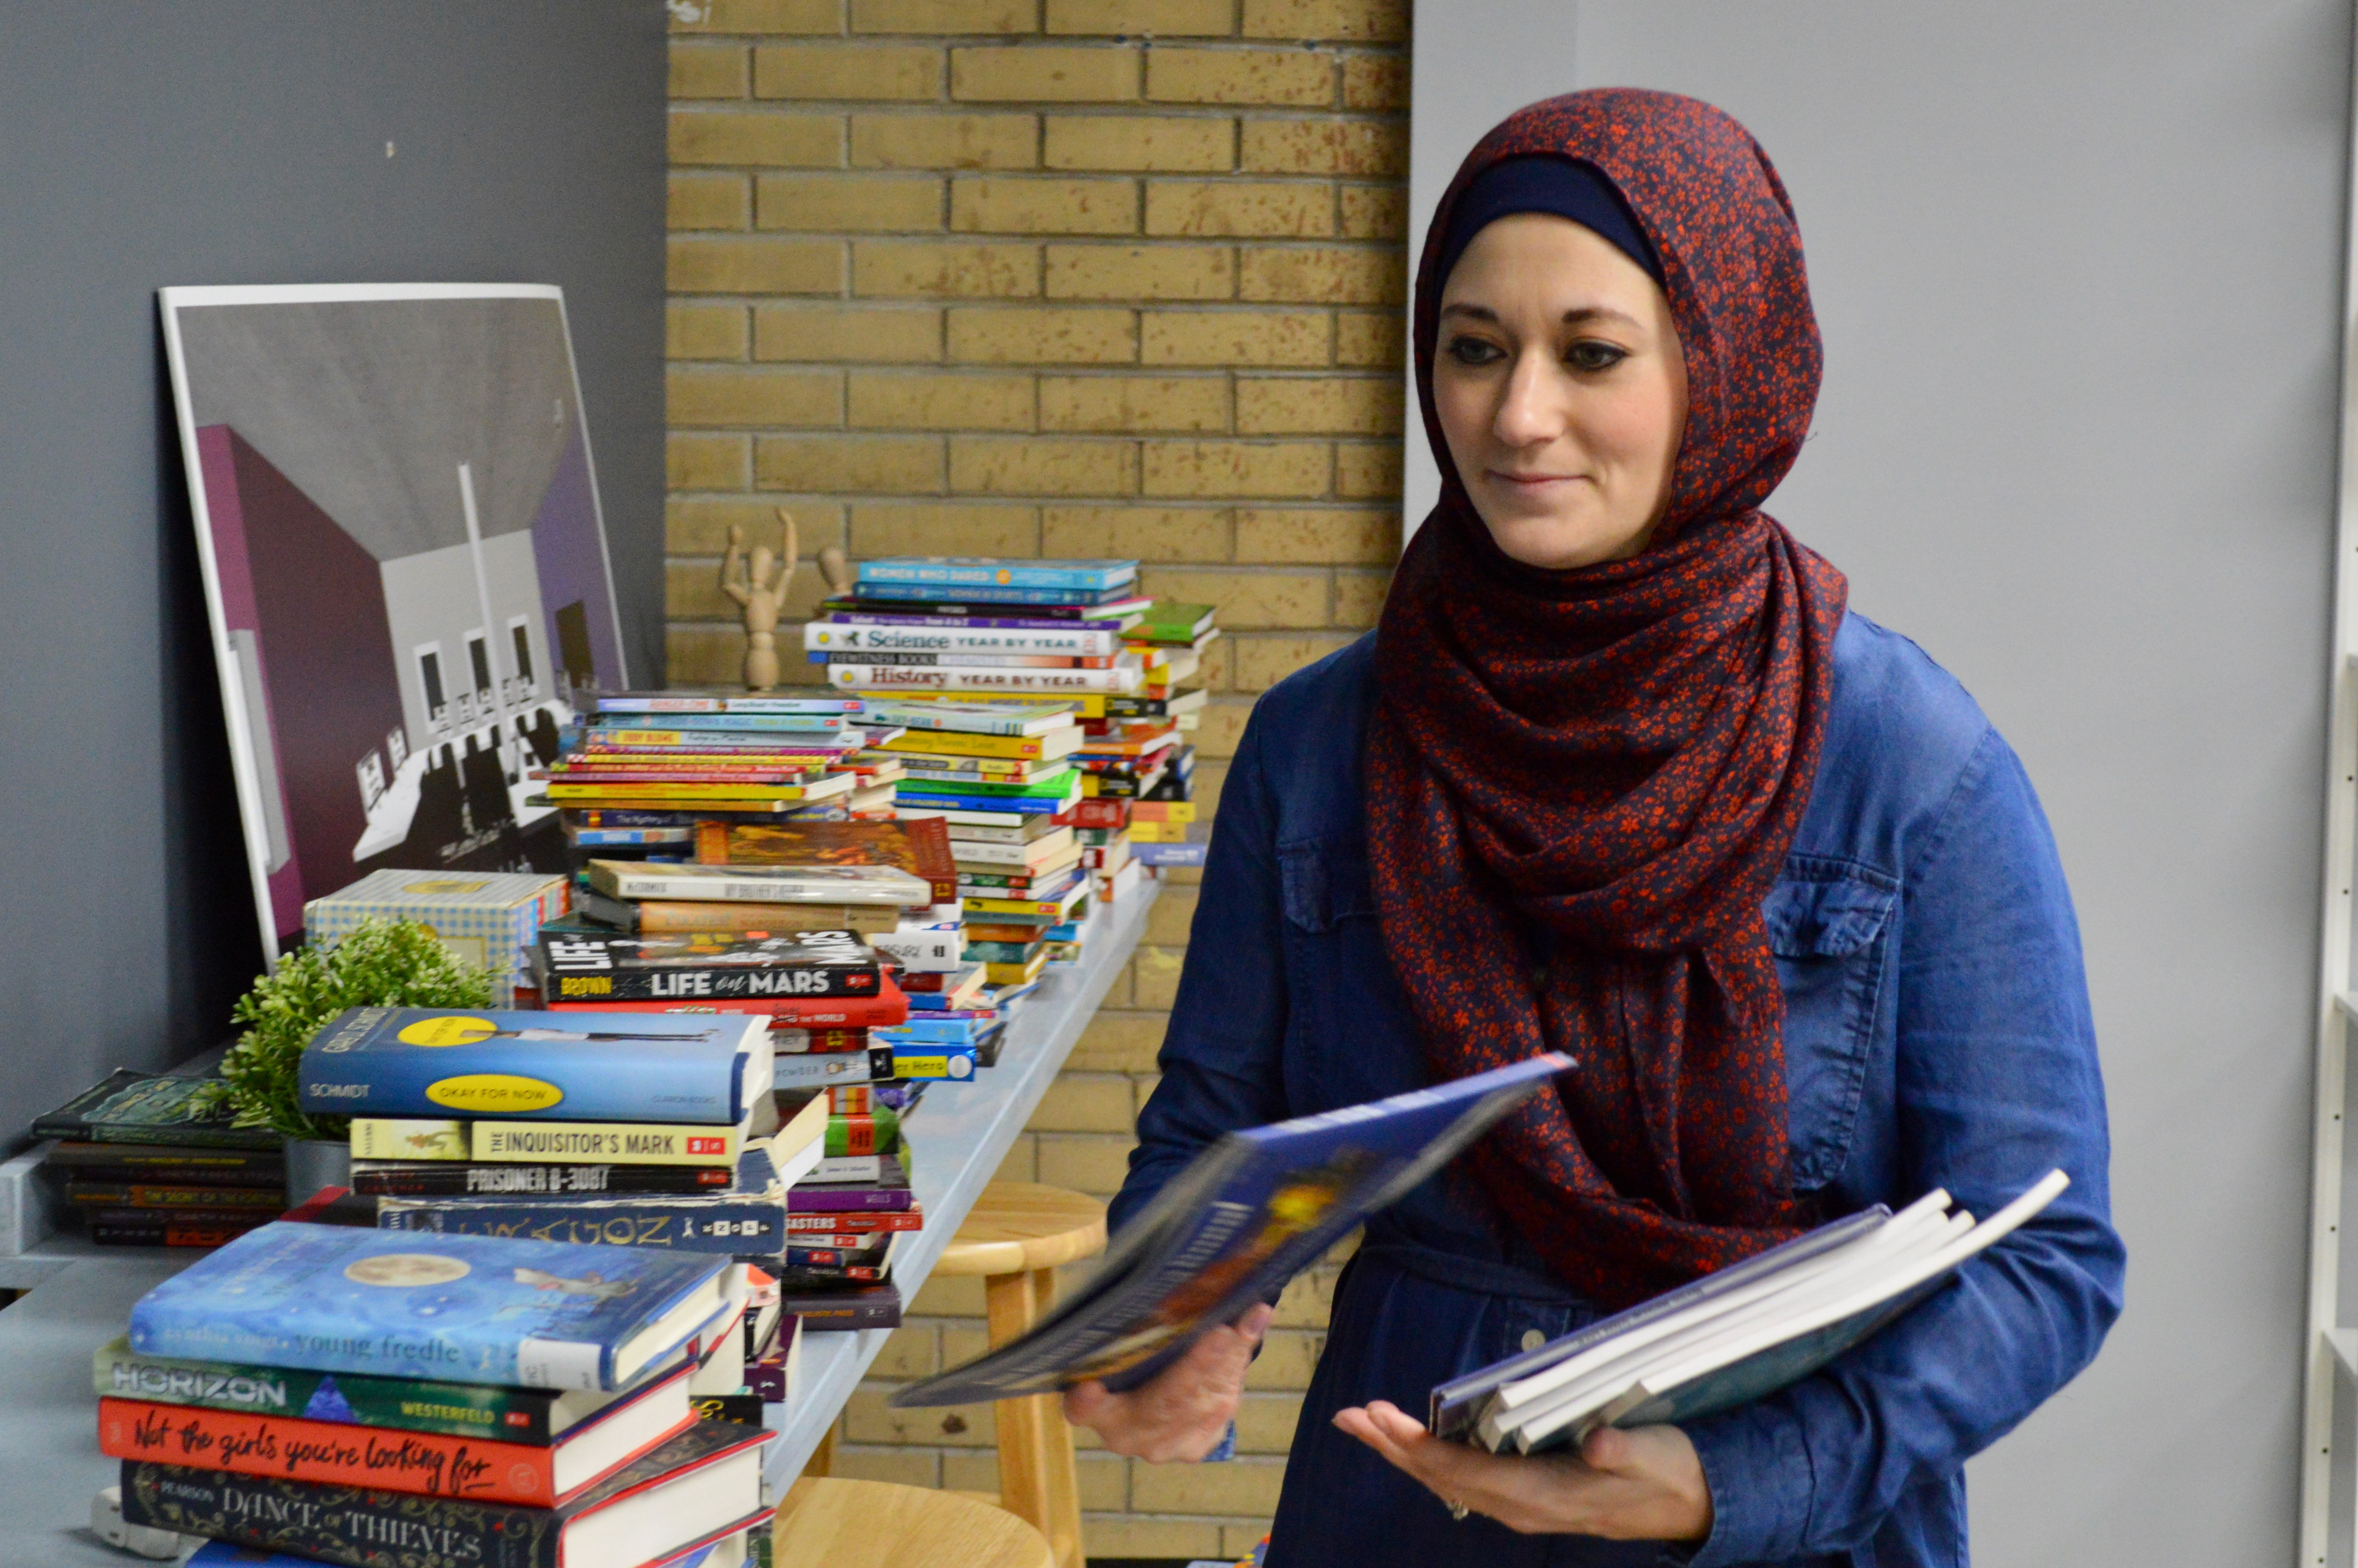 Brittany Khatib, a Ma'ruf volunteer, sorts books in the center's library. Photo by Ana Martinez-Ortiz/NNS.